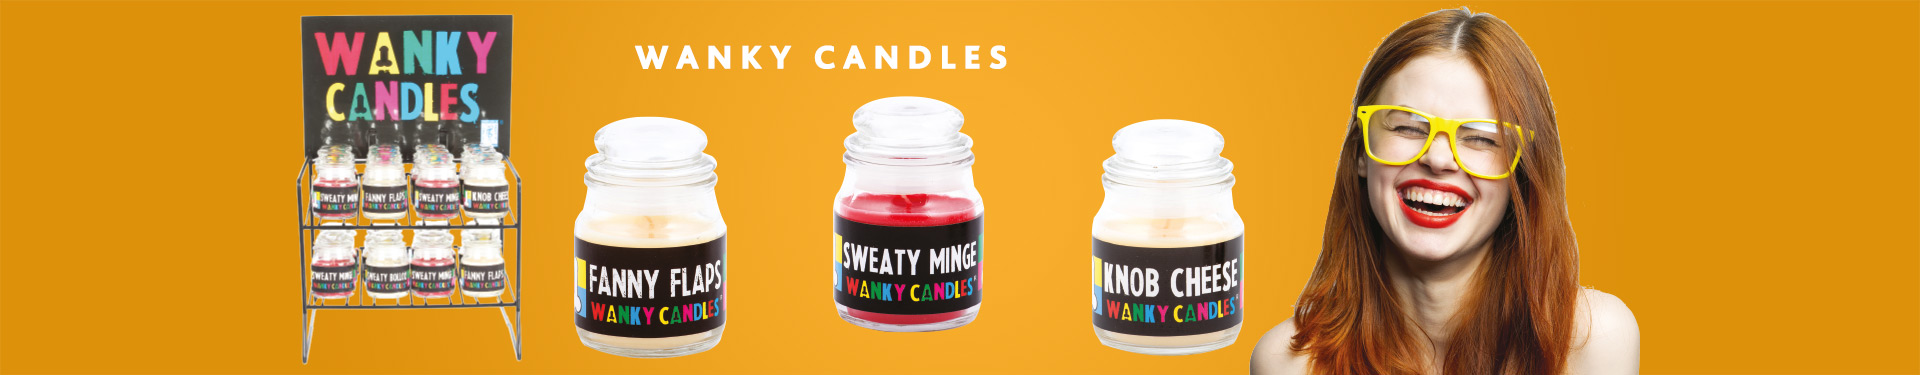 Wanky Candles